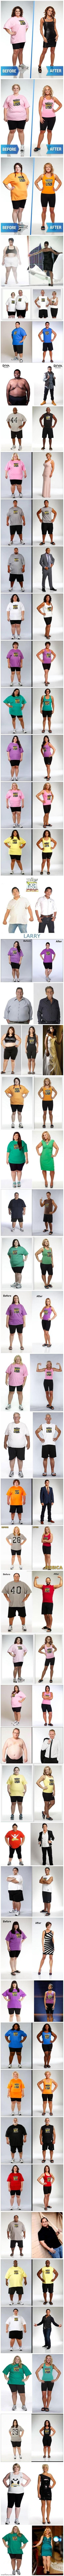 The biggest loser before and after. If these people can buckle down... So can you!